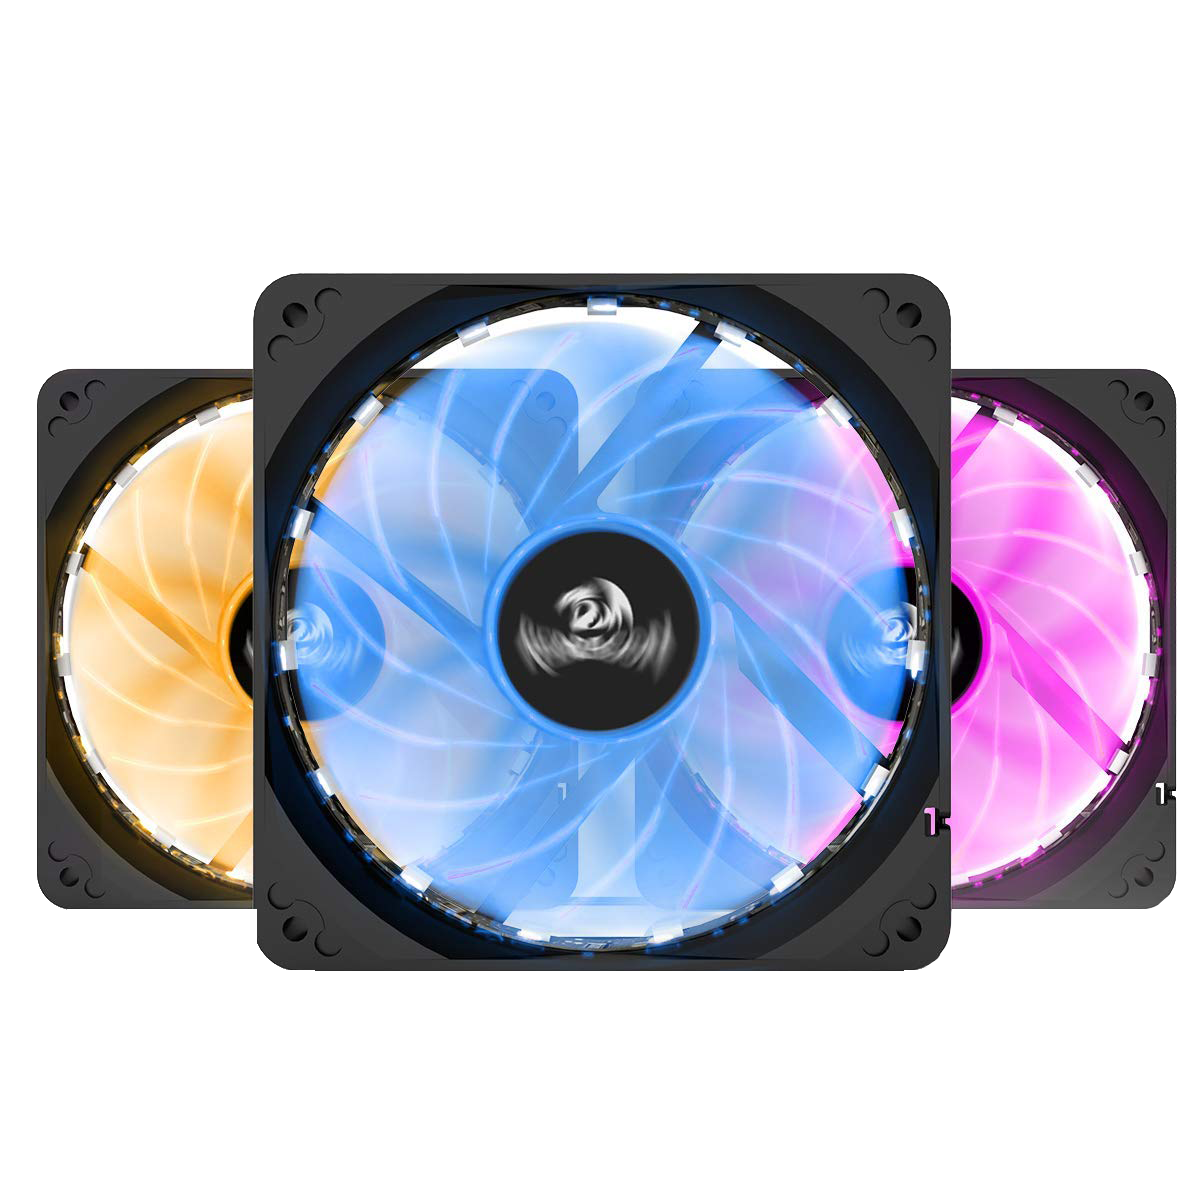 Computer PC Case RGB Cooling Fan LED 120mm Cooler with Remote Control Quiet Fan